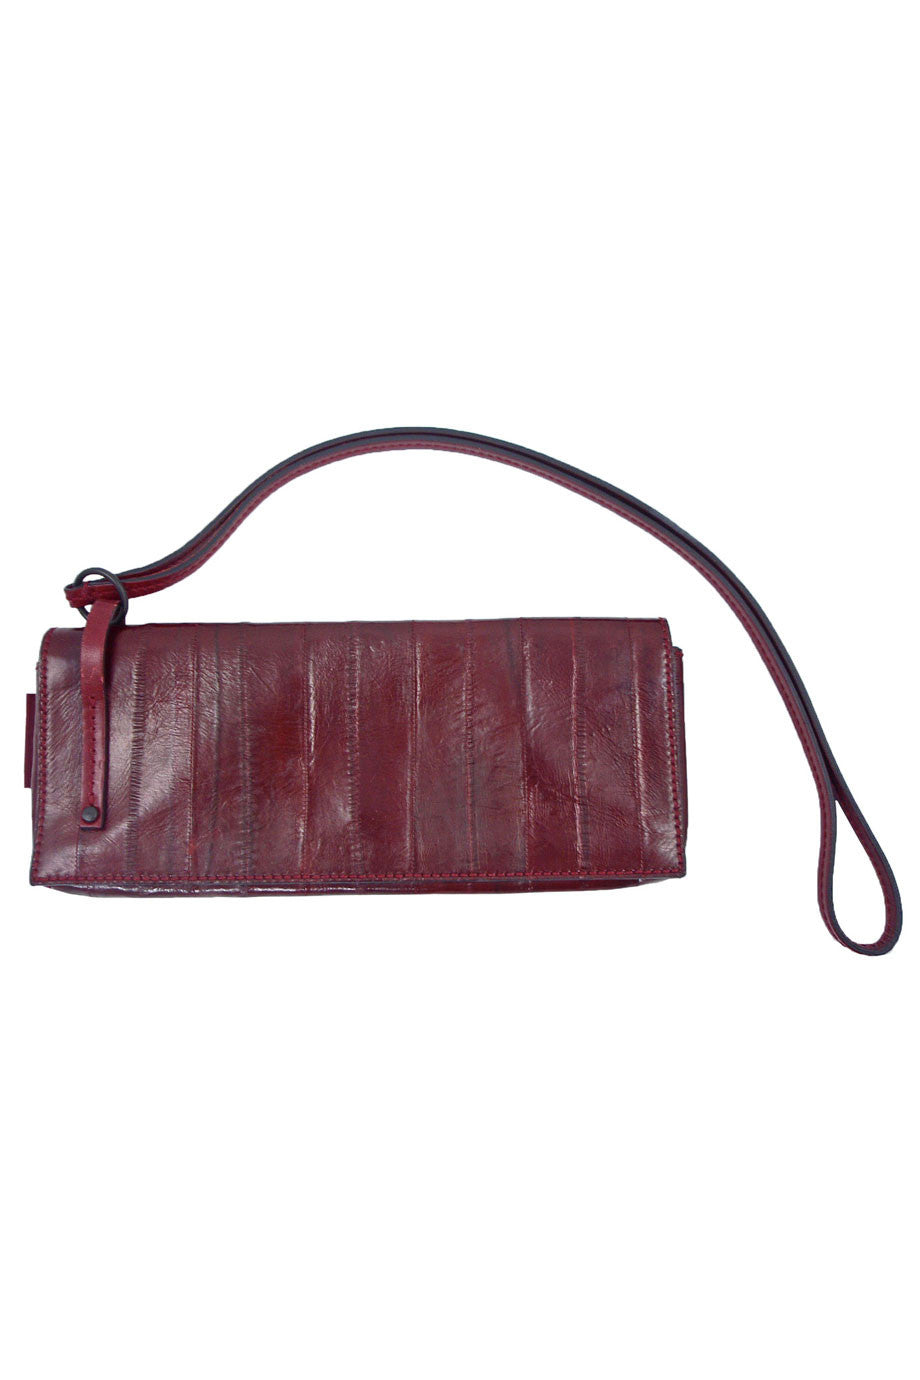 Gucci Sleek Burgundy Red Eel Skin Leather Clutch Bag - Style Therapy  - 1